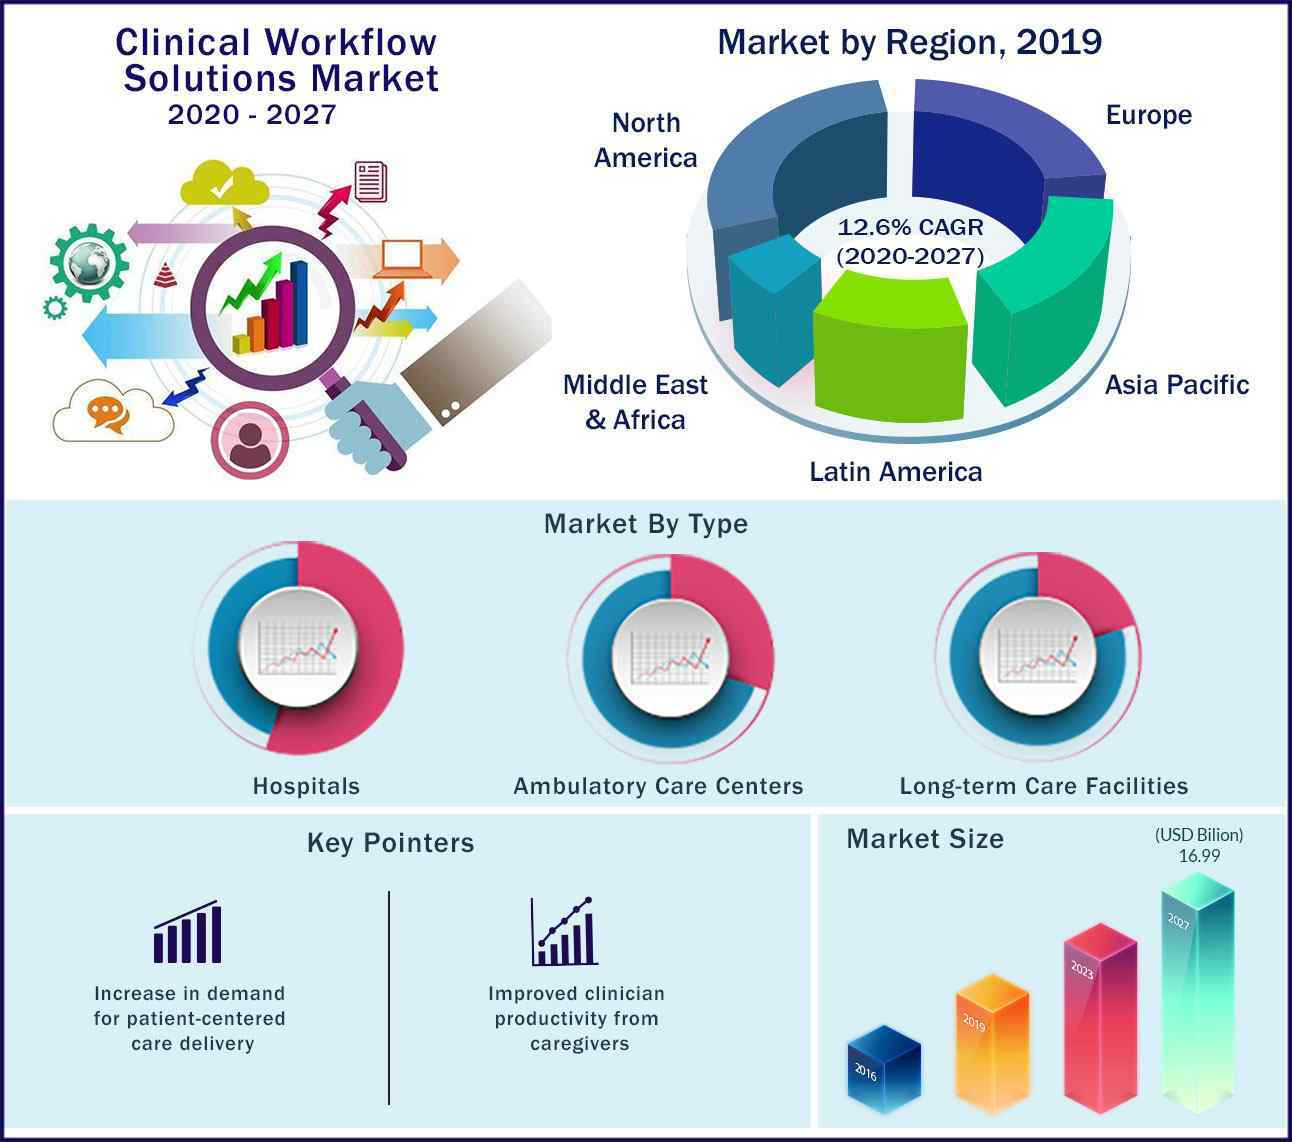 Global Clinical Workflow Solutions Market 2020 to 2027